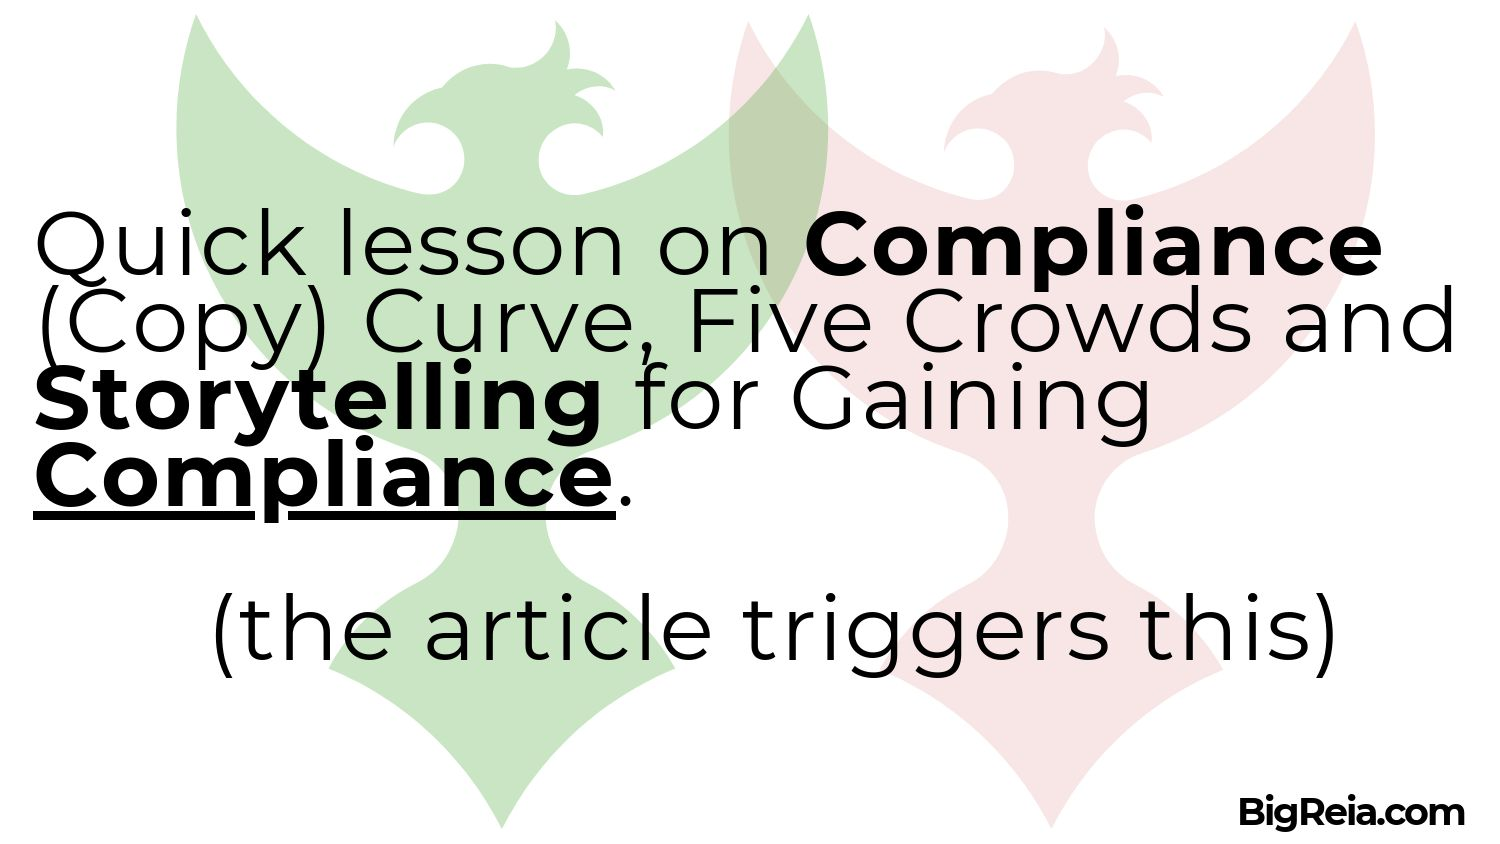 Story telling for compliance gaining